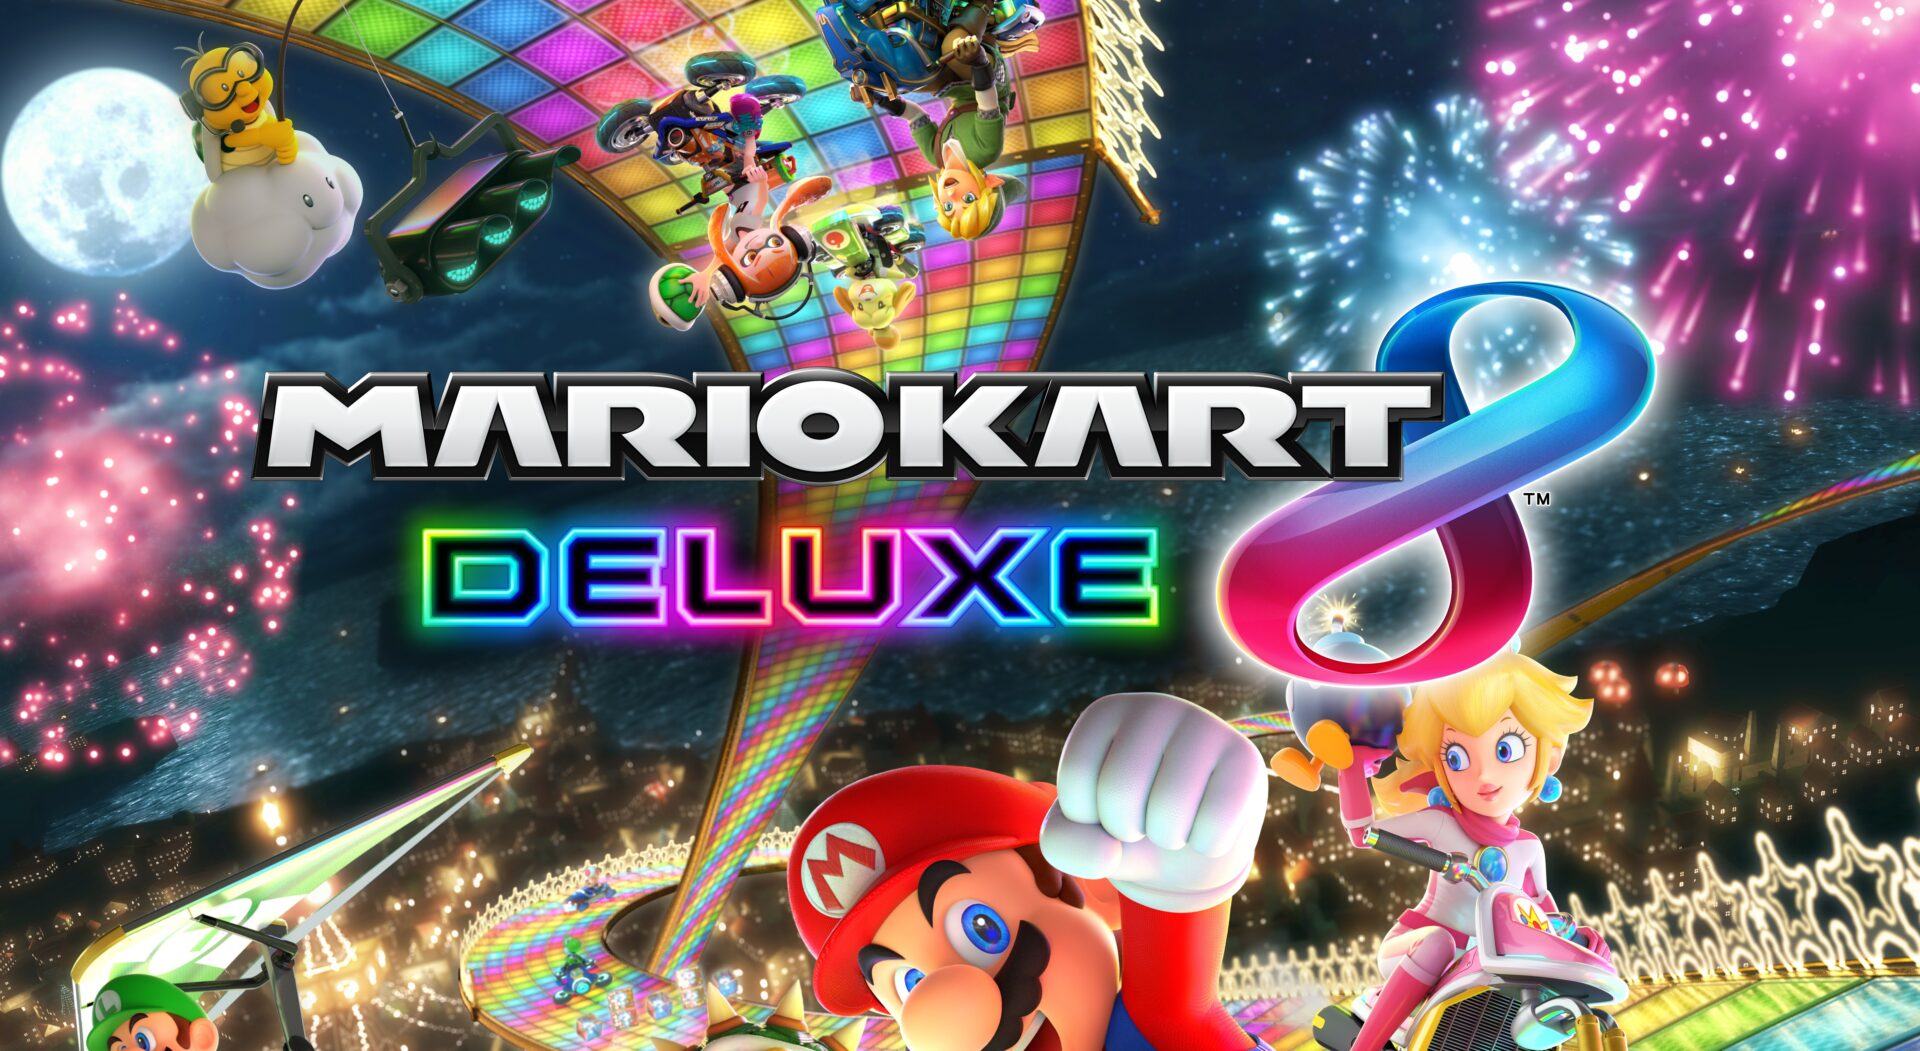 Mario Kart 8 Deluxe New Footage Showcases Battle Mode And